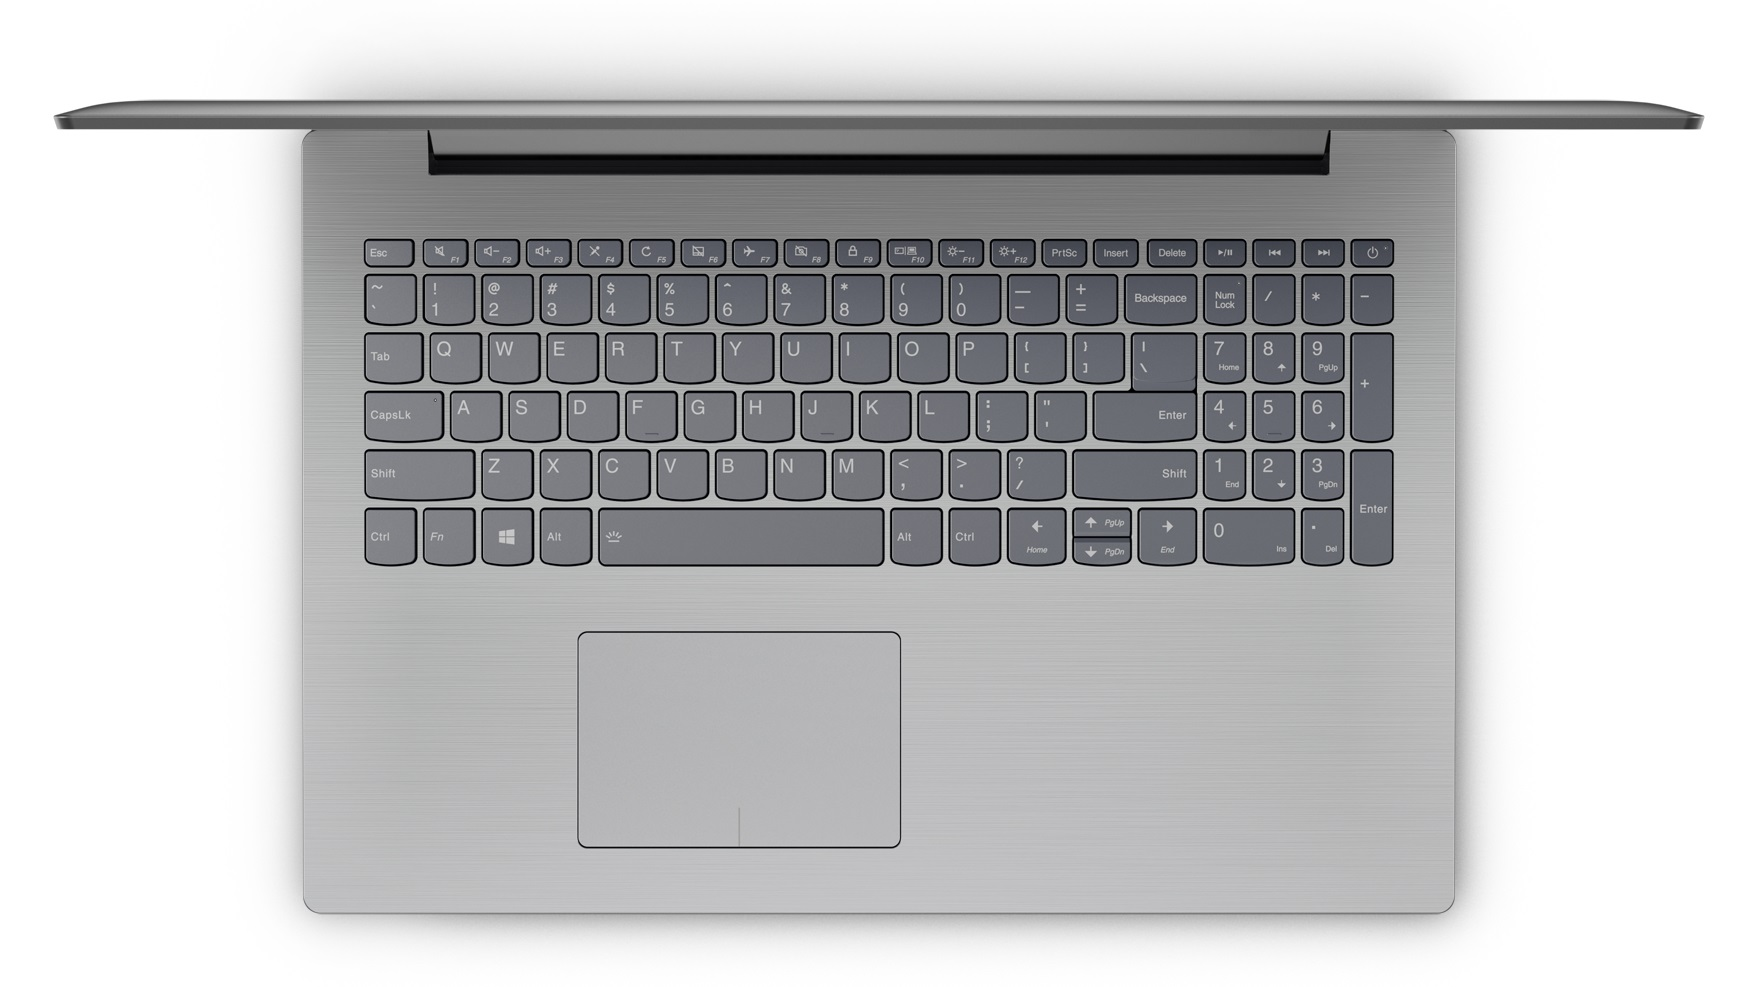 Фото  Ноутбук Lenovo ideapad 320-15IKB Platinum Grey (80XL02SRRA)